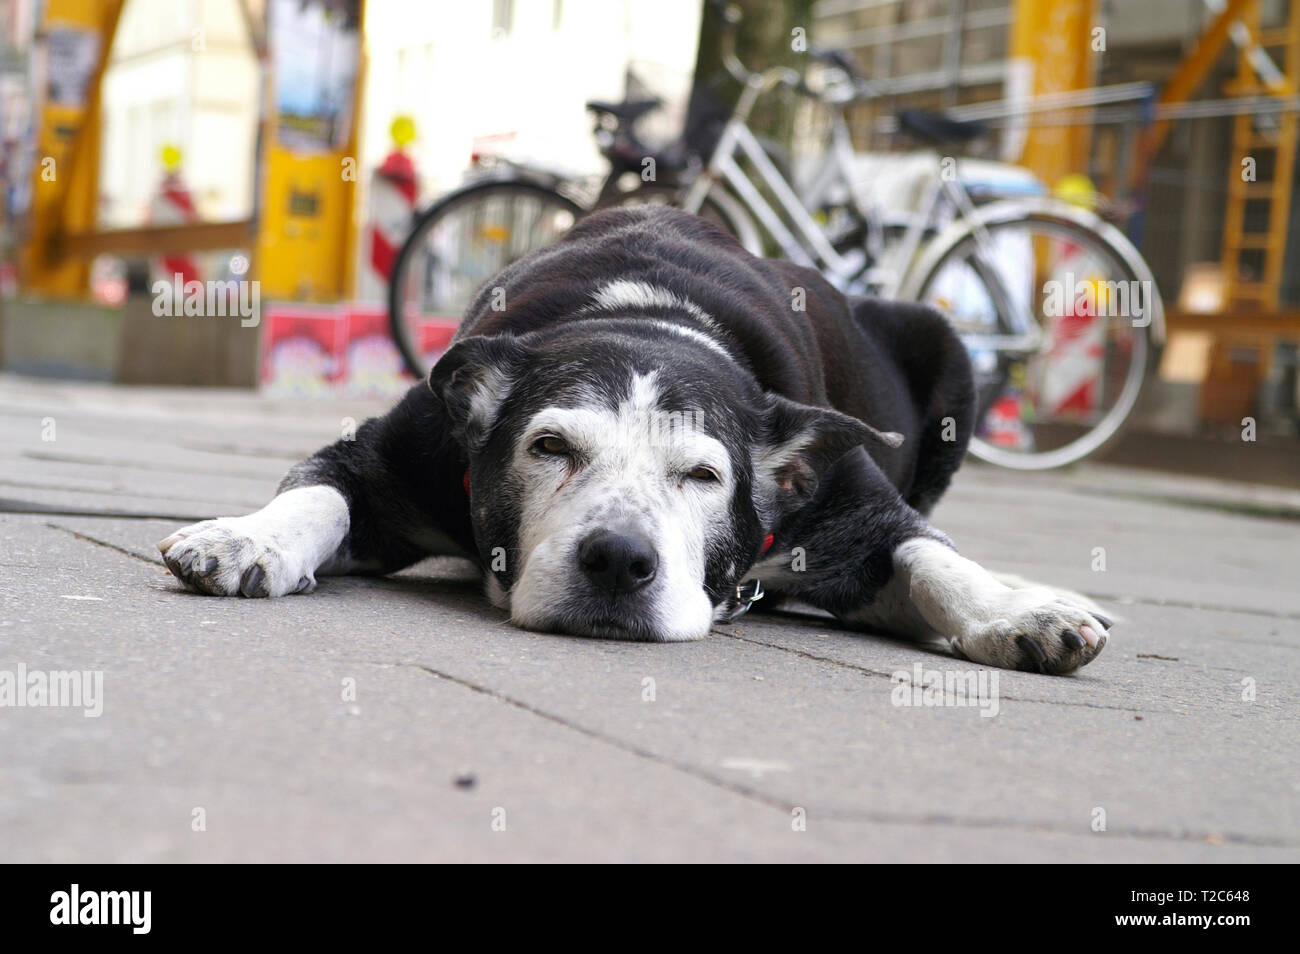 Dog lies in front of a shop in shopping street, Sternschanze district, Hamburg, Germany - Stock Image